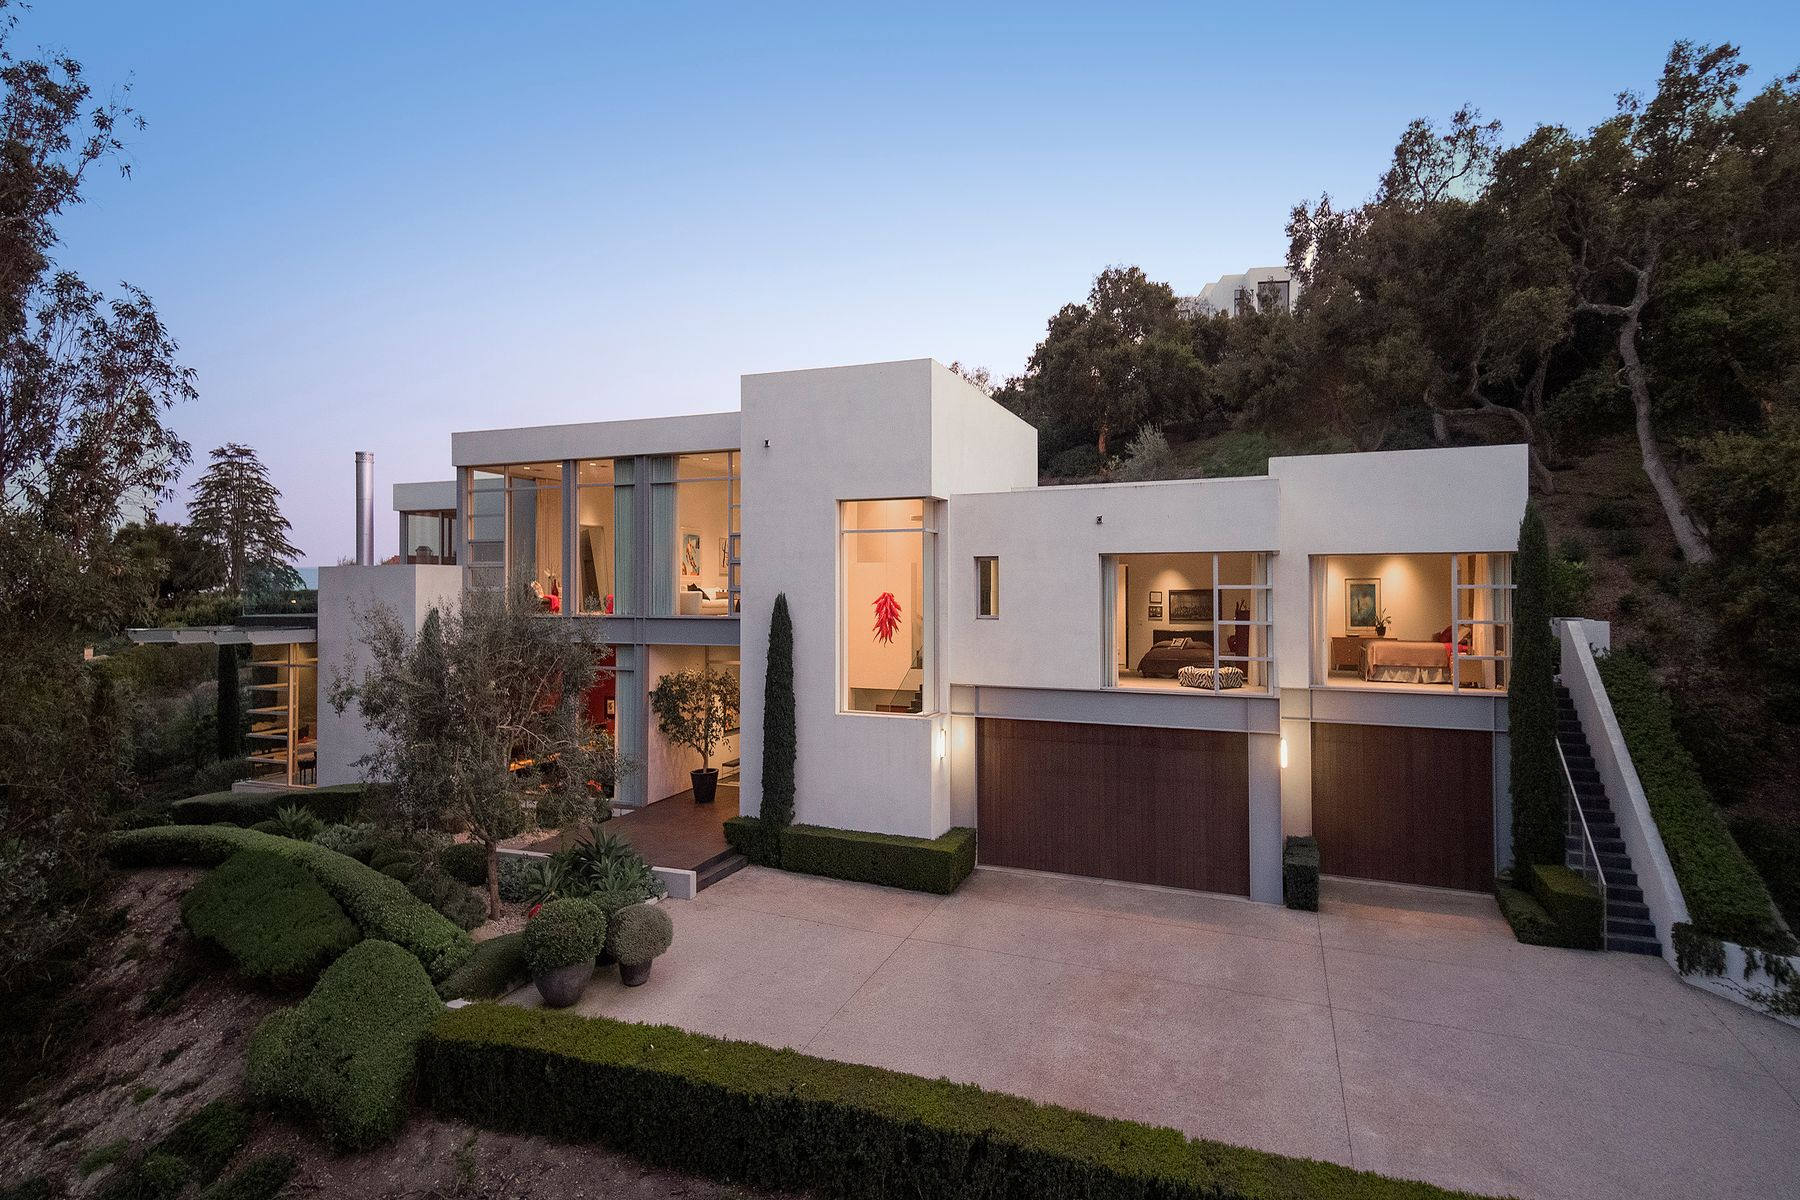 Single Family Homes for Sale at Contemporary Masterpiece in Montecito 396 Woodley Road Montecito, California 93108 United States